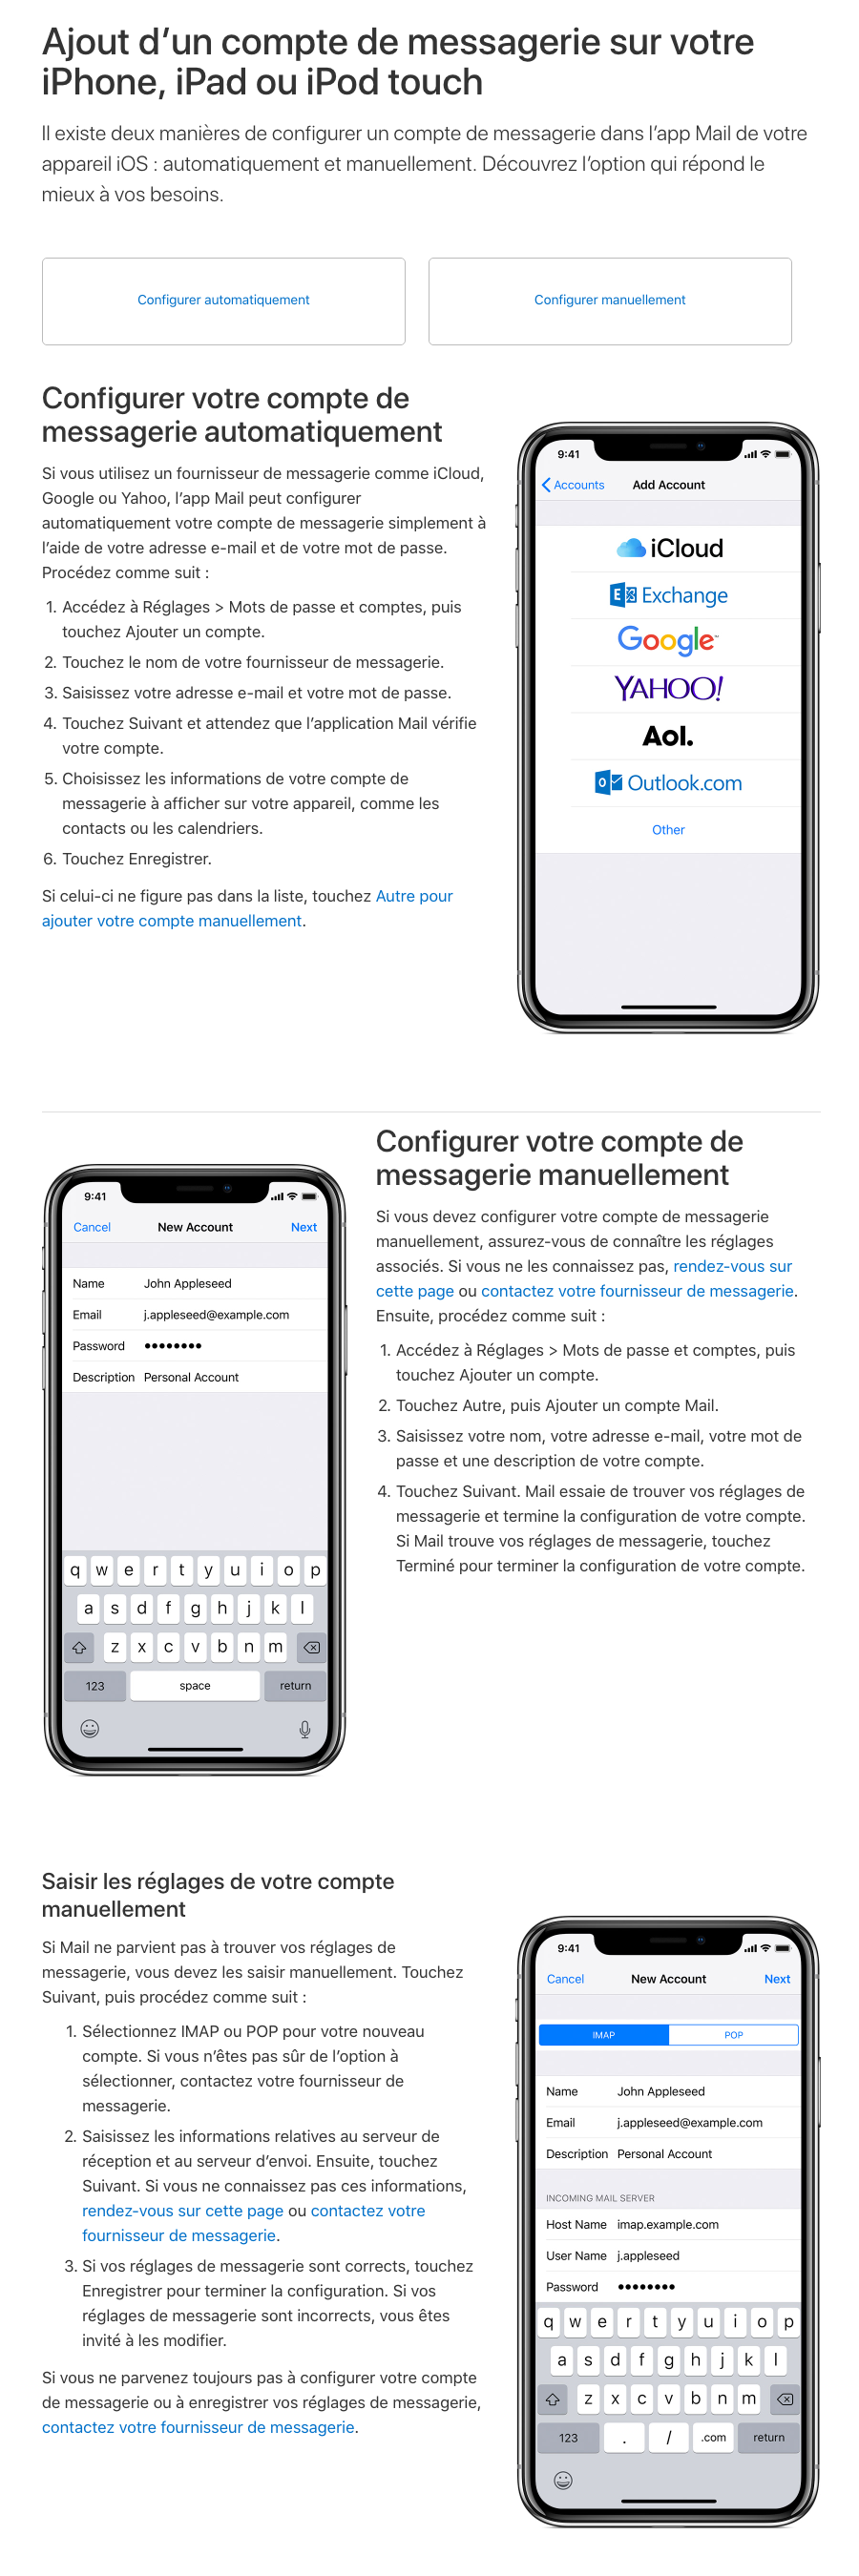 Ajout-compte-messagerie-support-apple-fr